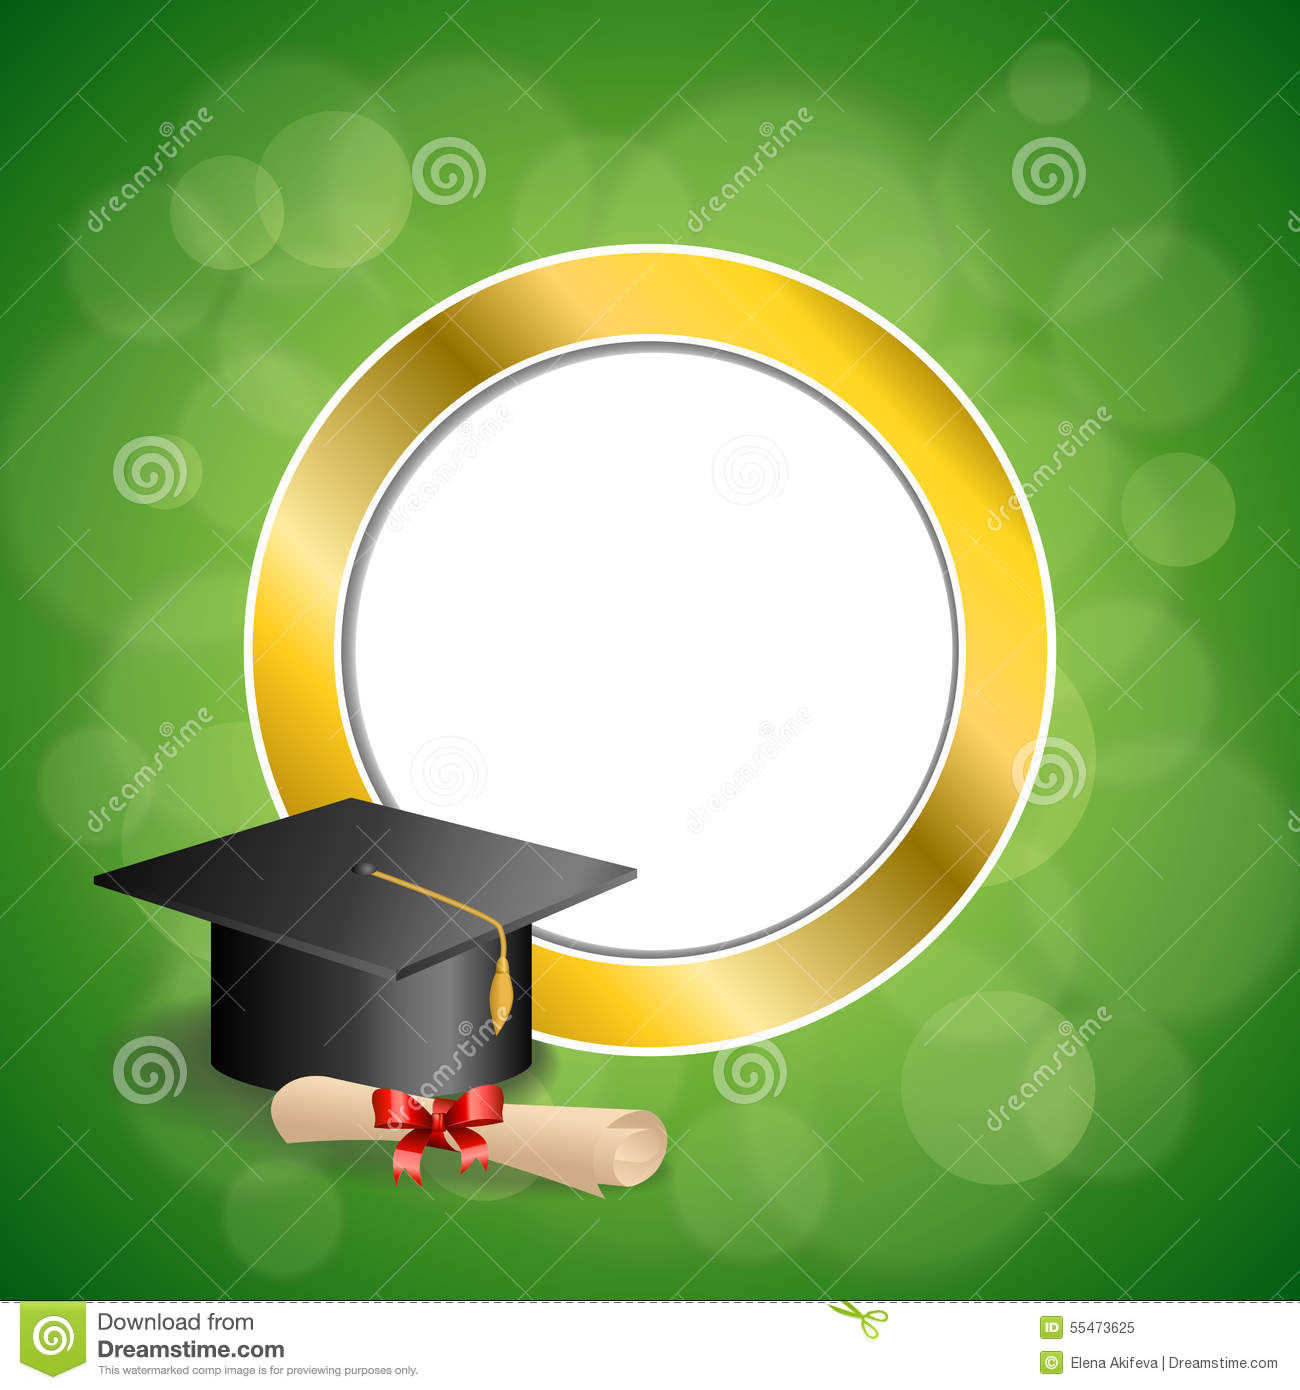 Background abstract green education graduation cap diploma red bow gold circle frame illustration